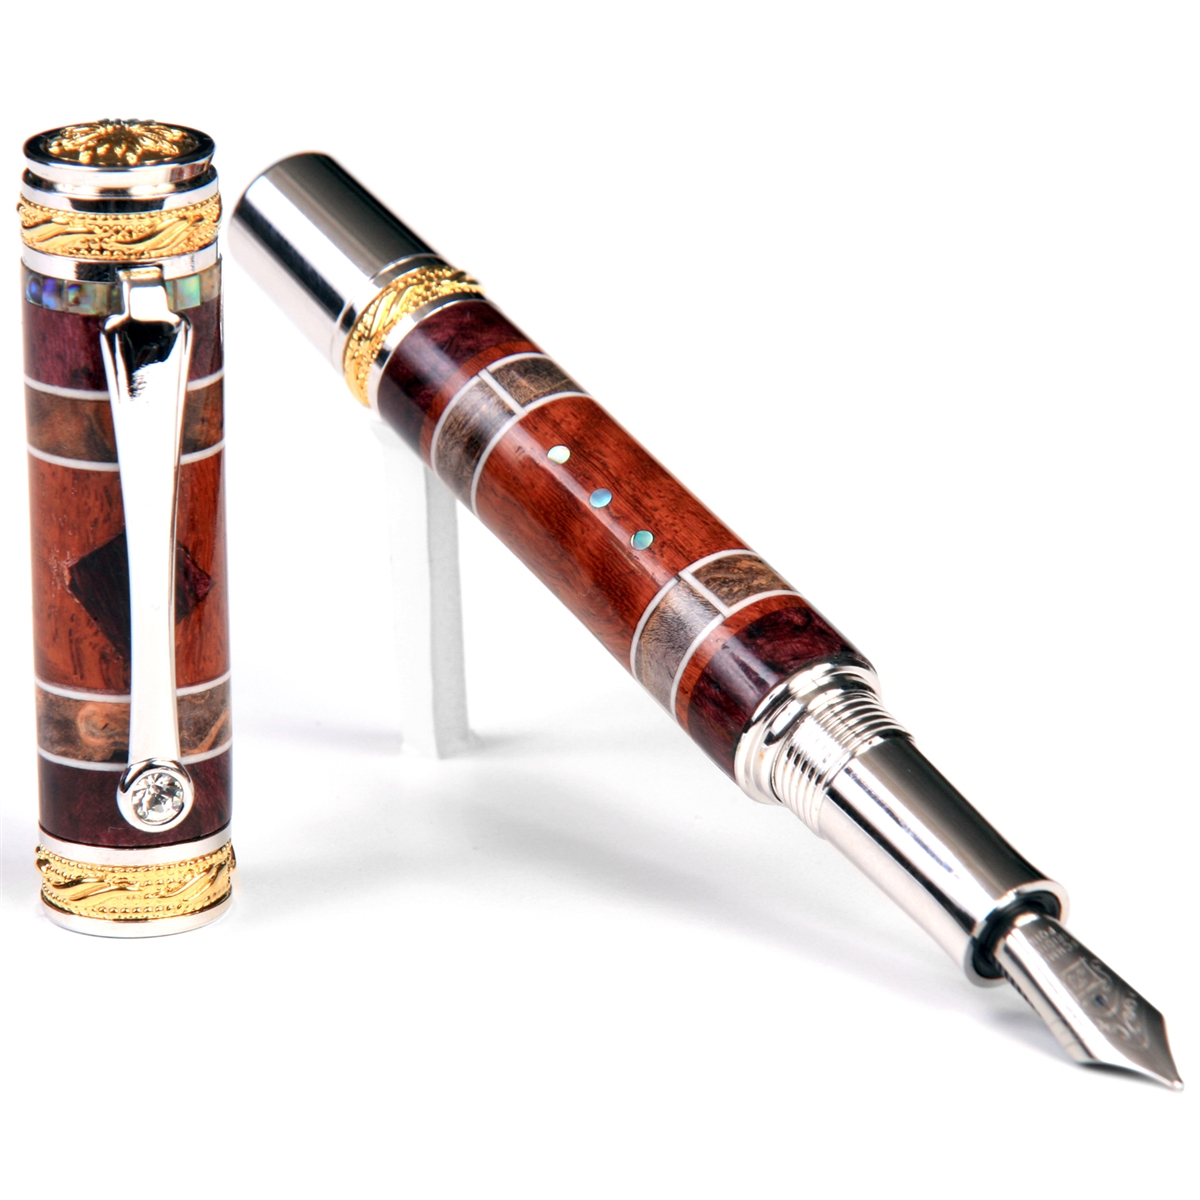 Majestic Fountain Pen - Beeswing Narra, Amboyna Burl, Purple Box Elder Inlays & Gray & Black Burl Inlays